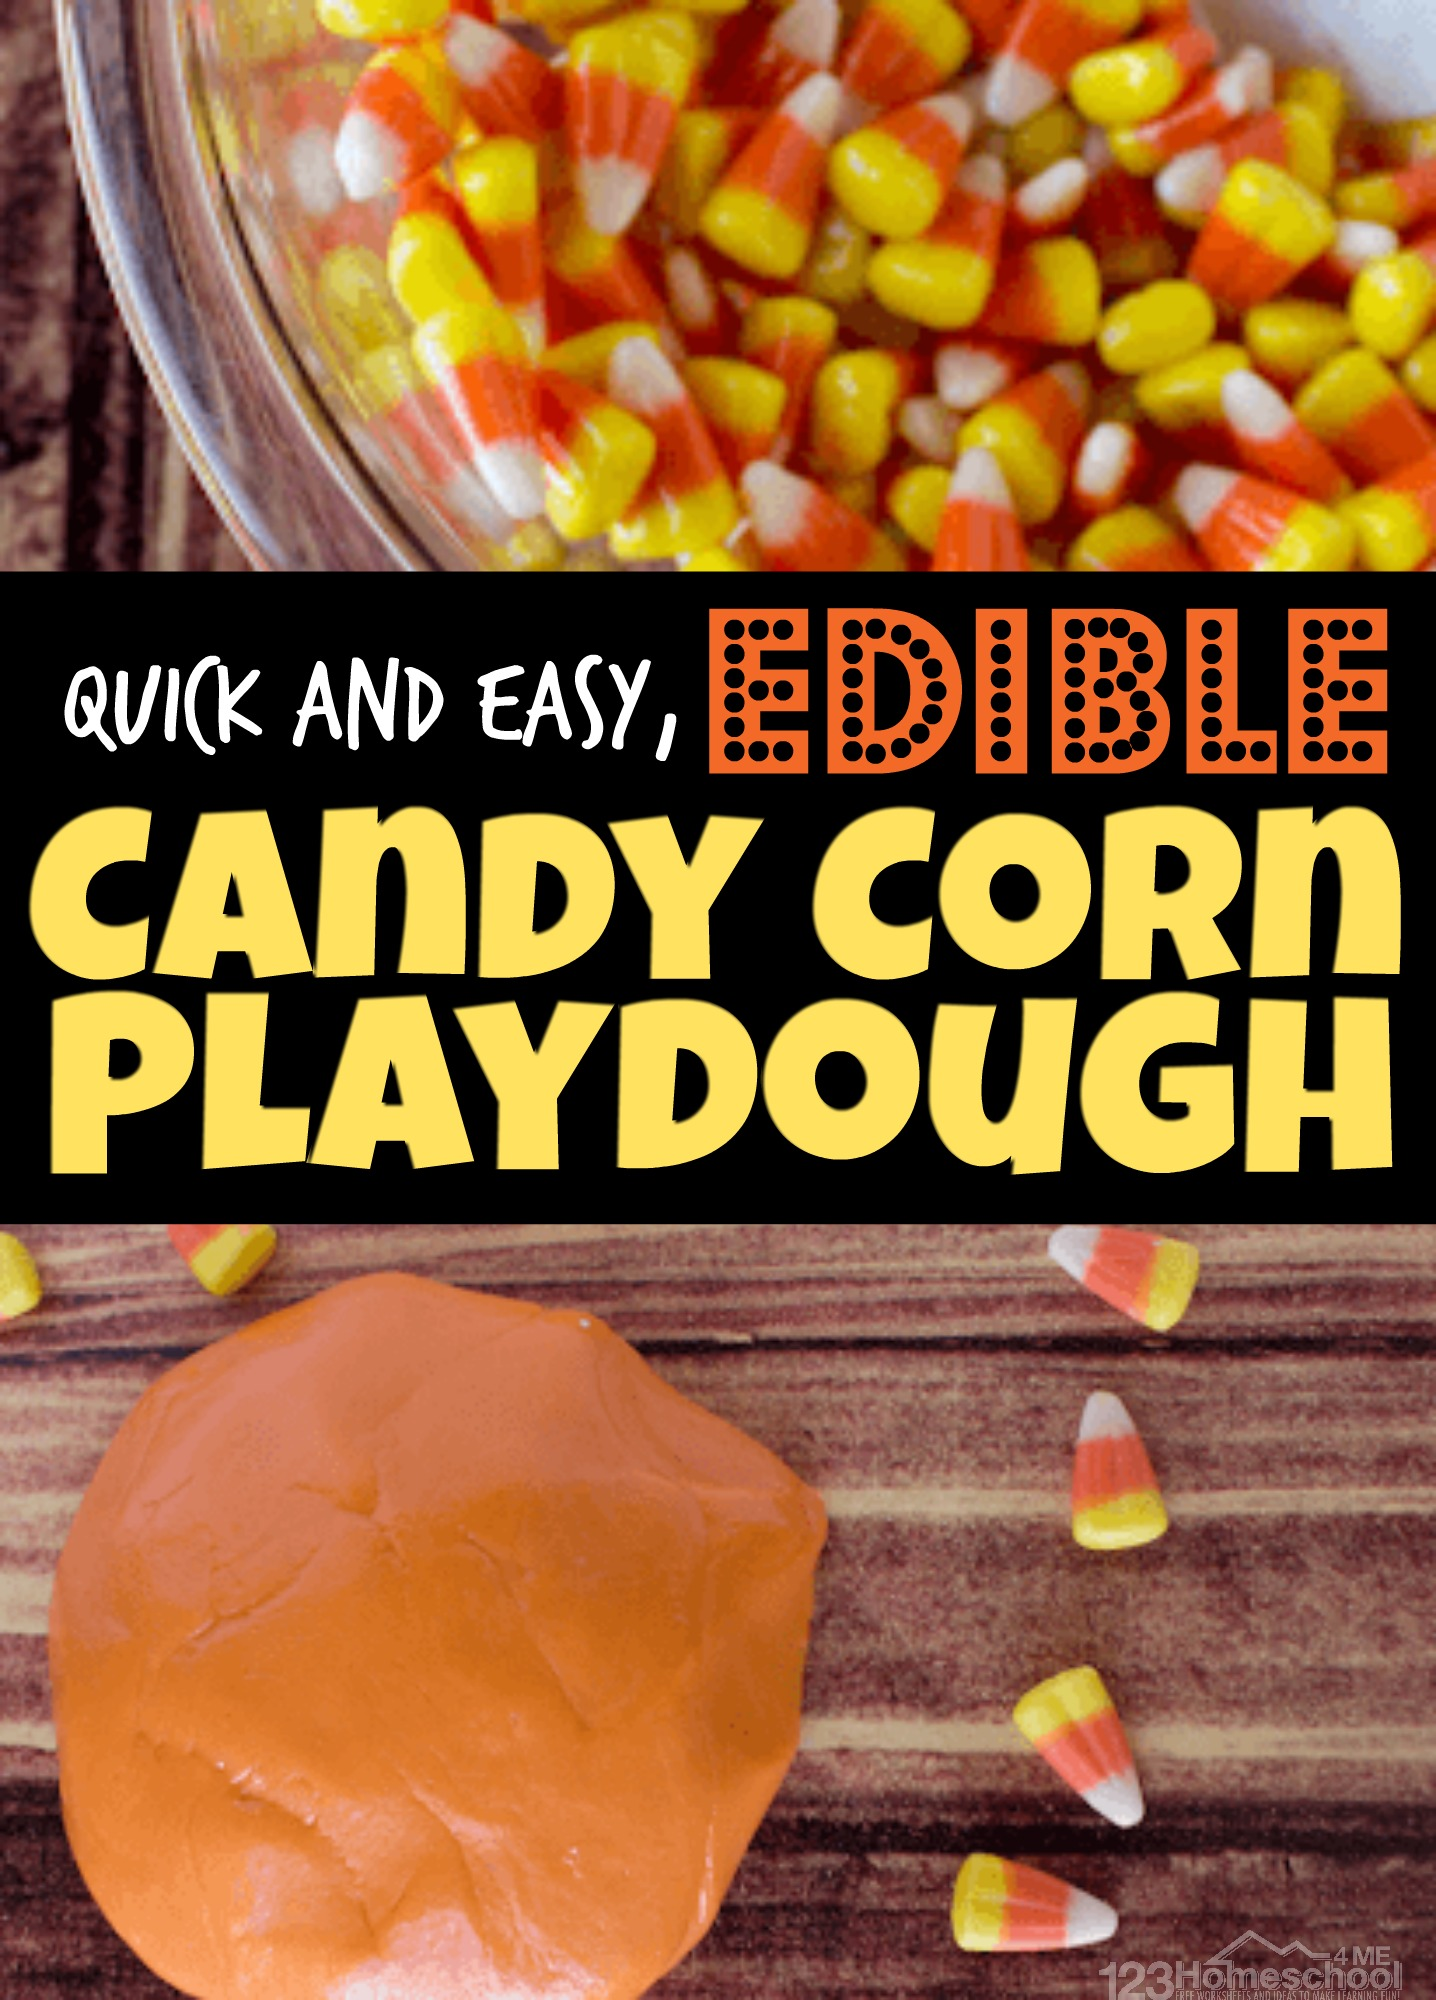 In less than 5 minutes you can have this delicious, fall themed candy corn playdough. This edible playdough is super quick and easy to make, fun to play with during October and November, plus it uses fall favorite candy corn candy! Your toddler, preschool, pre k, kindergarten, and first grade students will love playing with this easy Playdough Recipe that is made from candy corn!